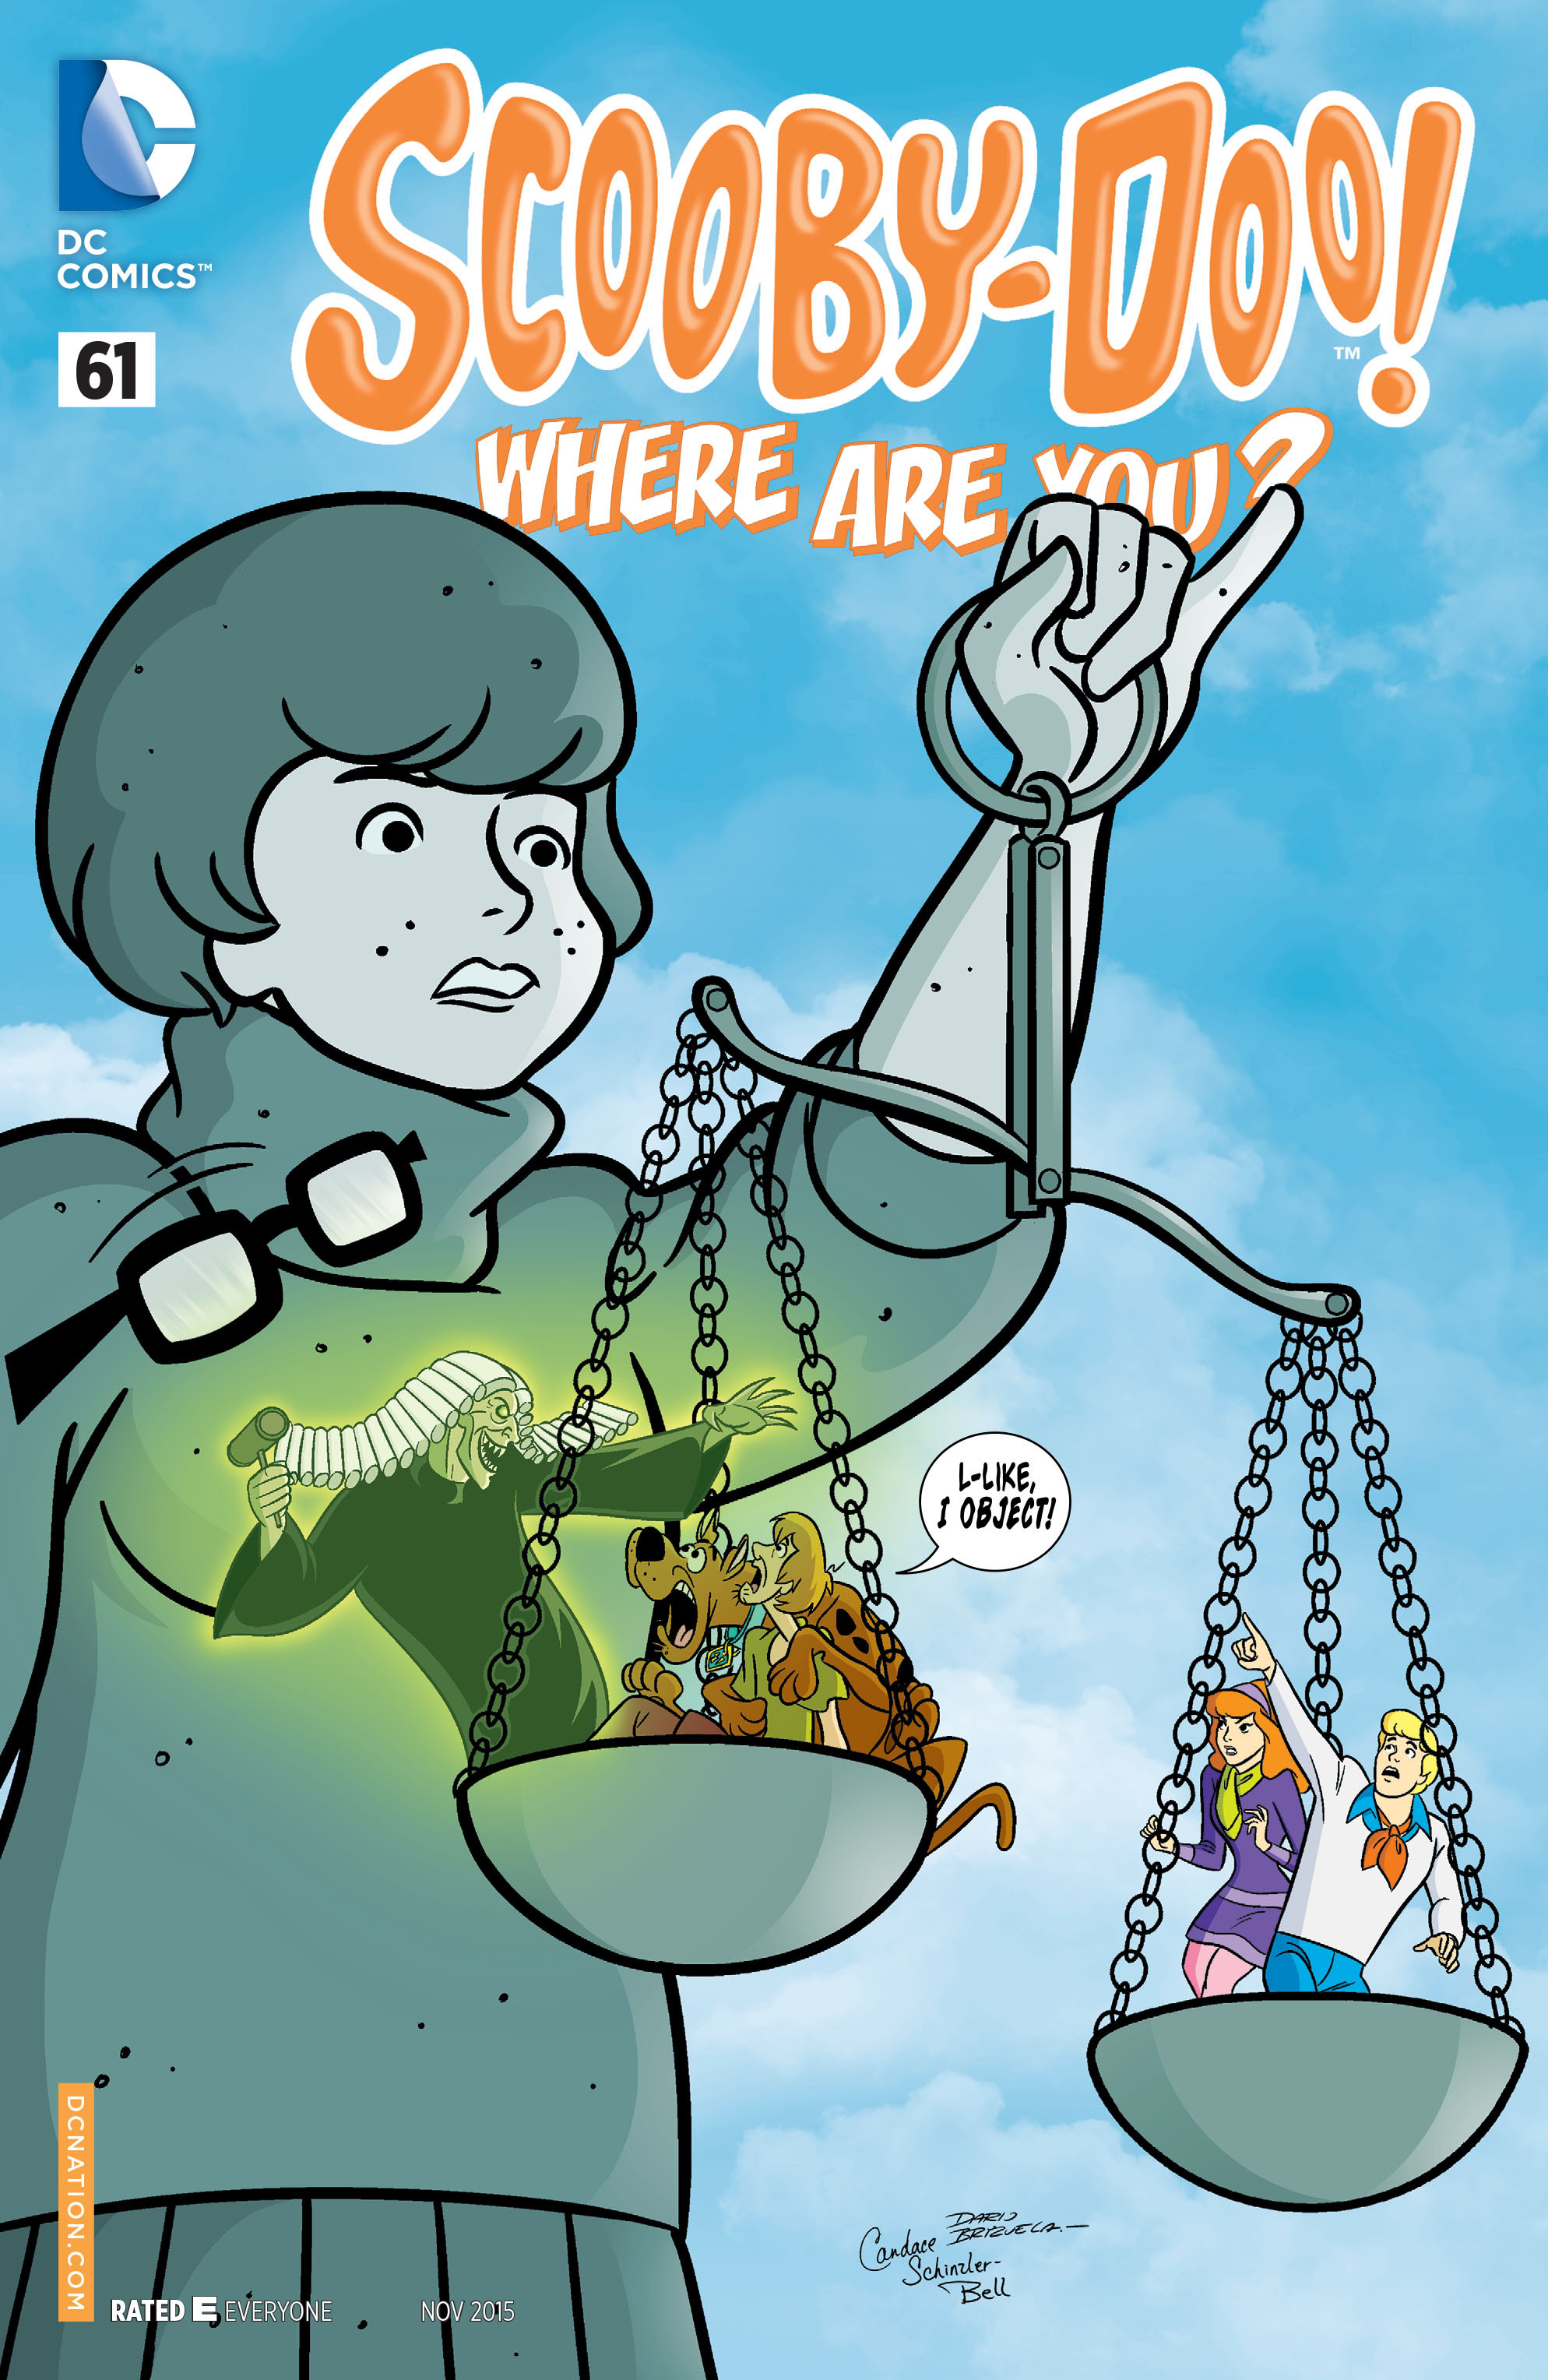 Read online Scooby-Doo: Where Are You? comic -  Issue #61 - 1